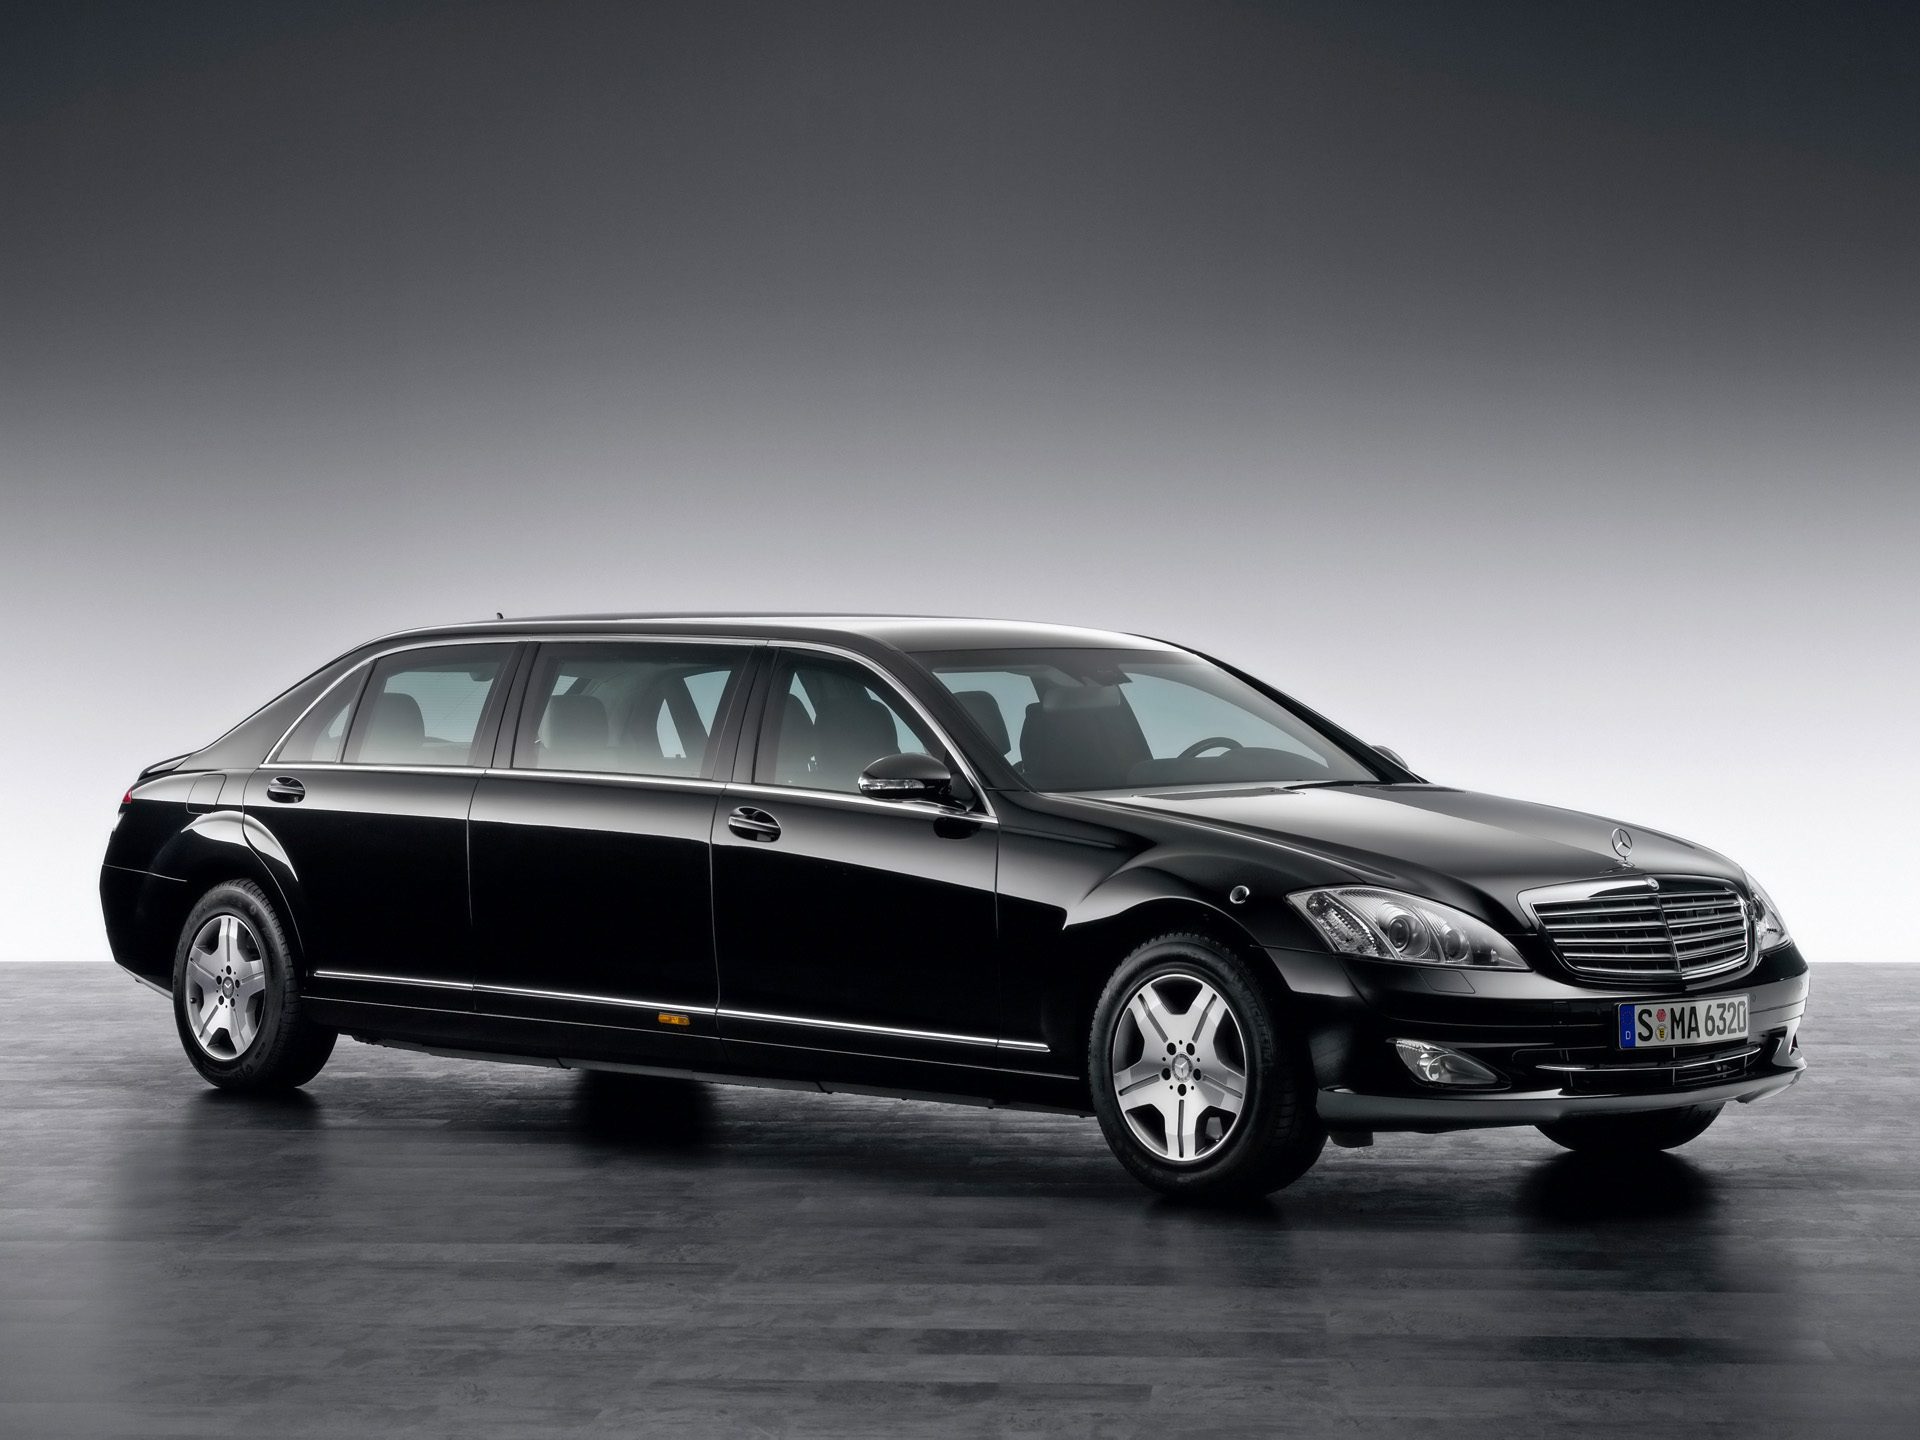 Mercedes-Benz S 600 Pullman Guard Limousine photos ...